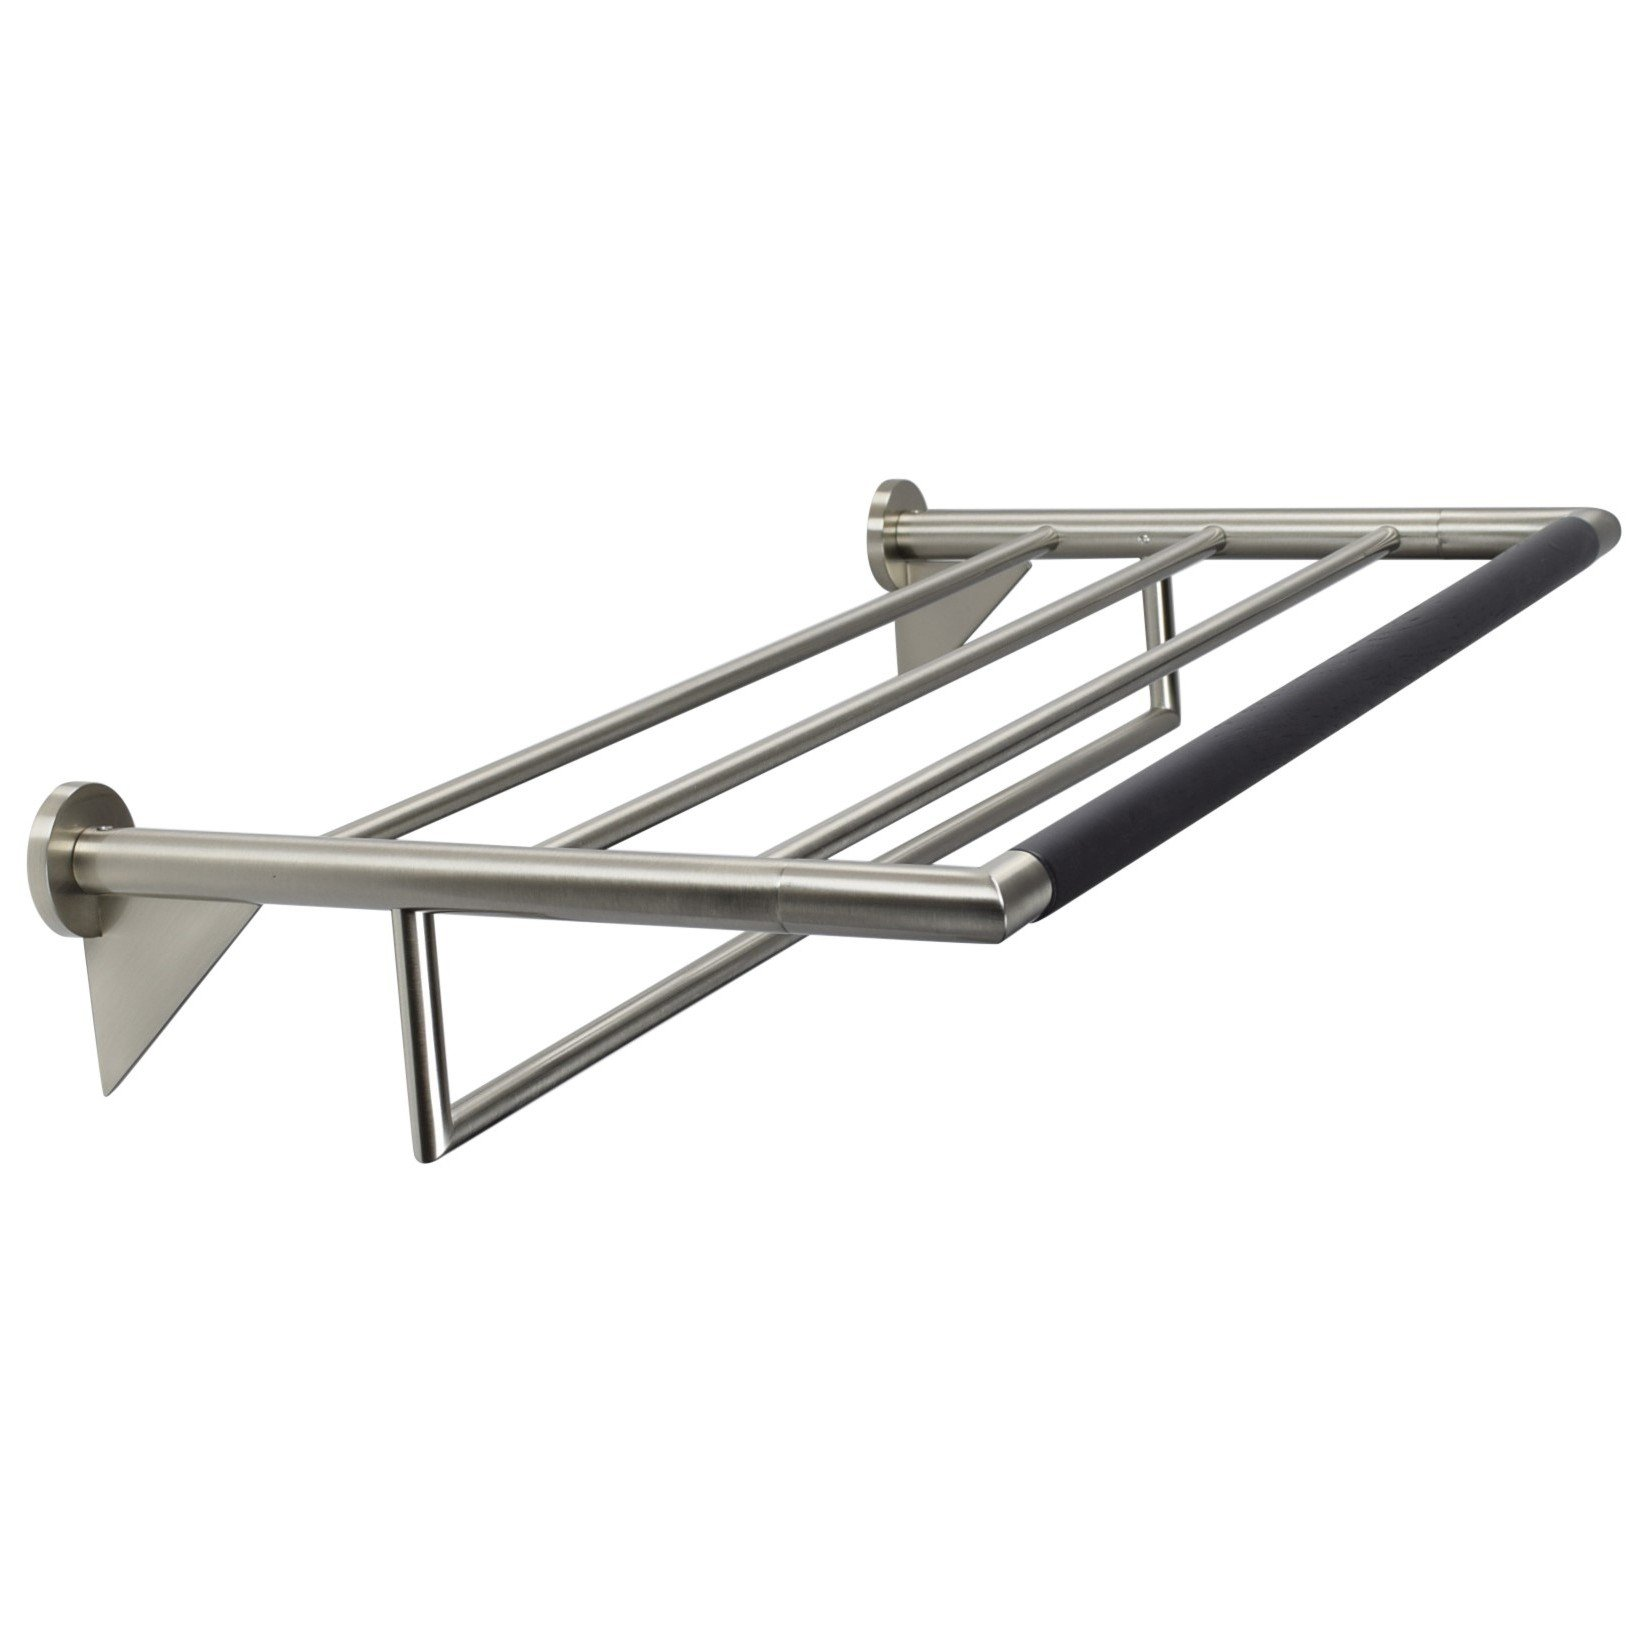 Ginger 42.51.10.15-254 K2 Hotel Brass Shelf - 42.51.10.15-254, by Ginger by Ginger